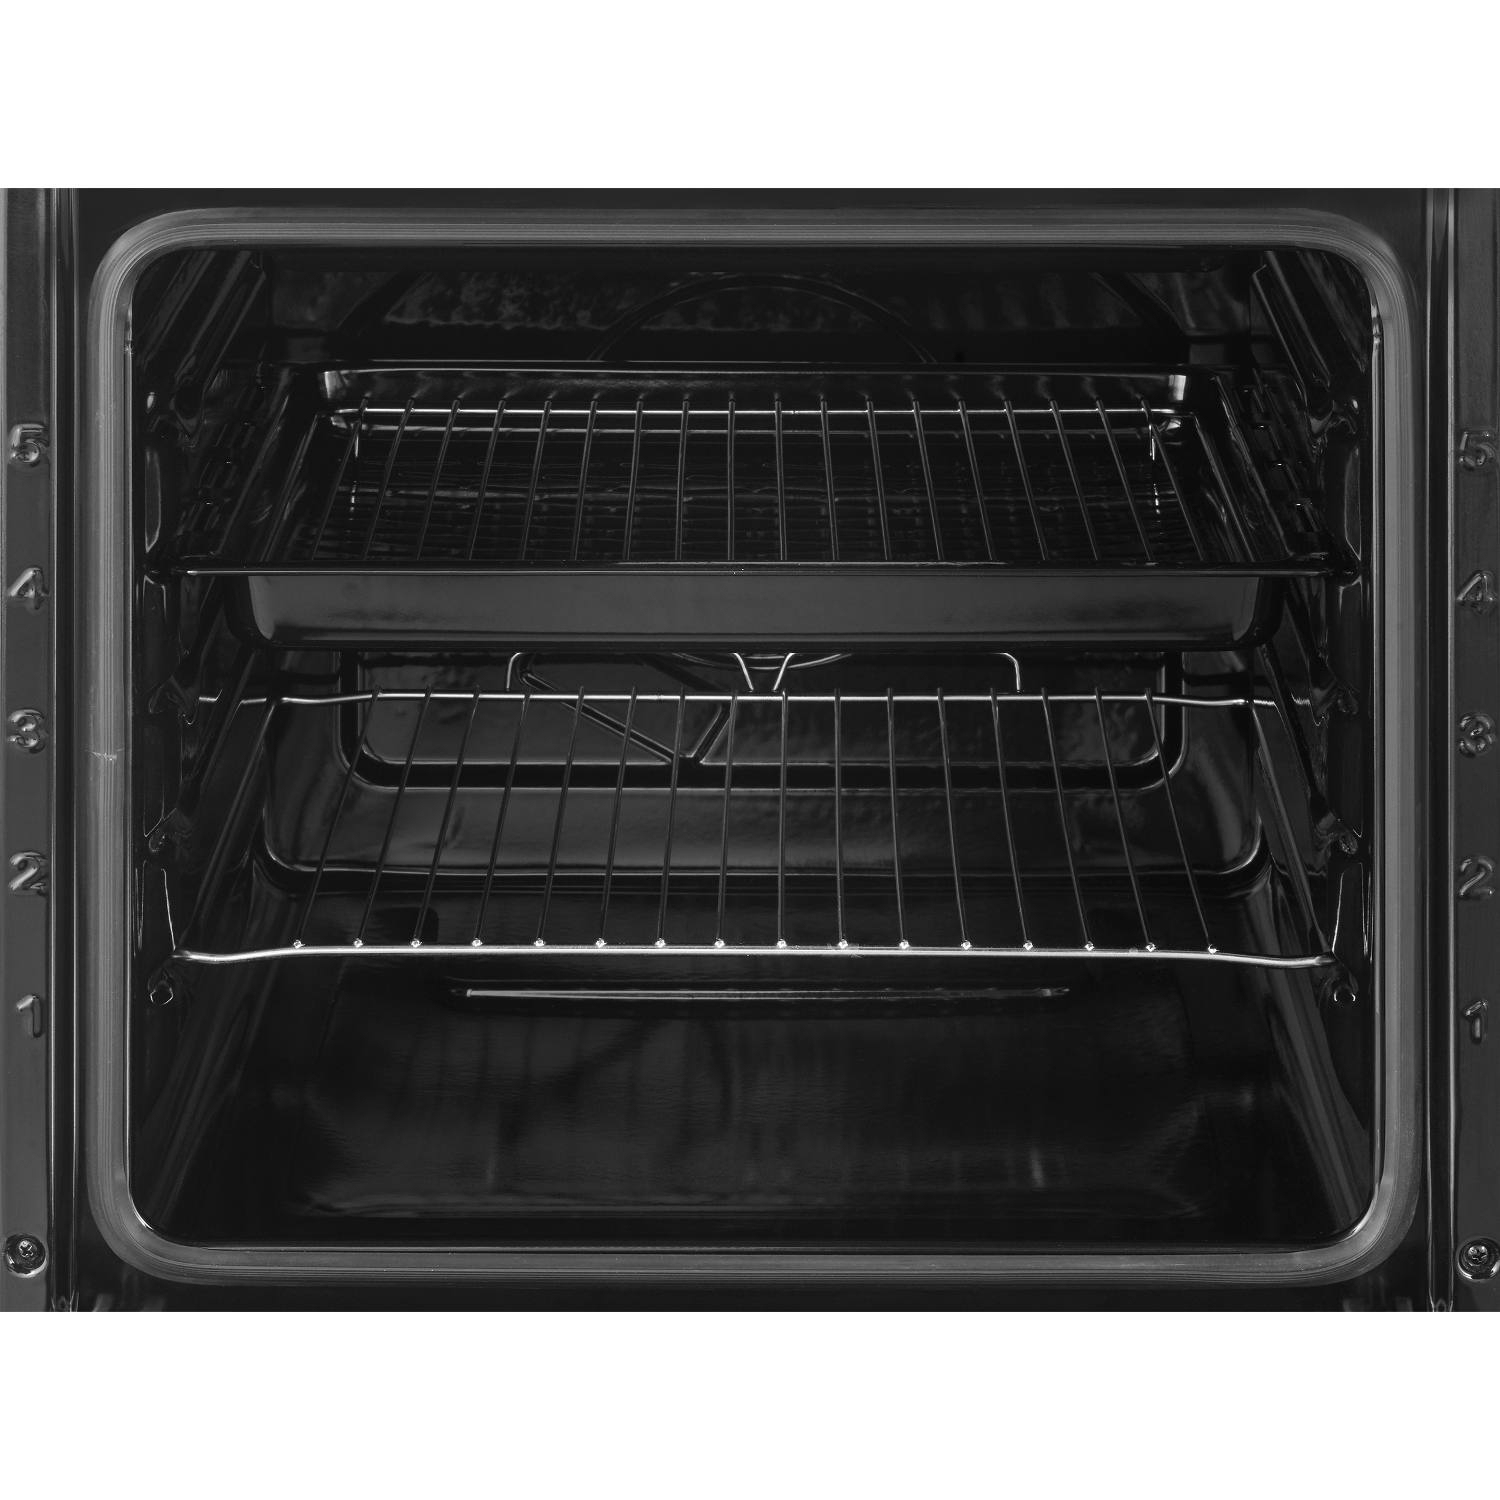 Beko 50cm Single Oven Electric Cooker - A Rated - 3